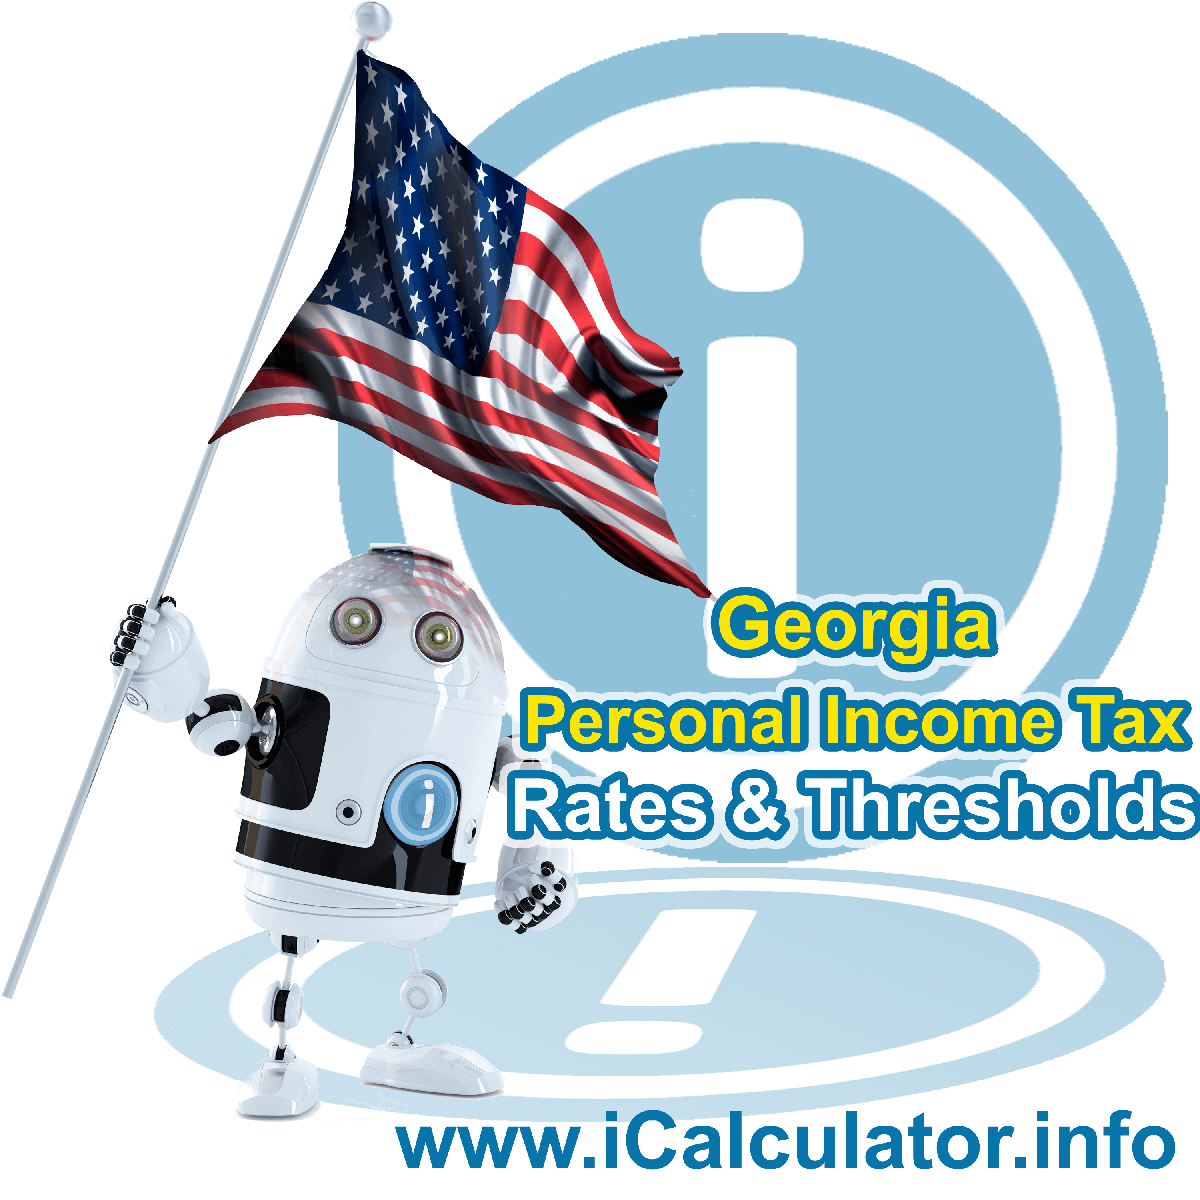 Georgia State Tax Tables 2013. This image displays details of the Georgia State Tax Tables for the 2013 tax return year which is provided in support of the 2013 US Tax Calculator